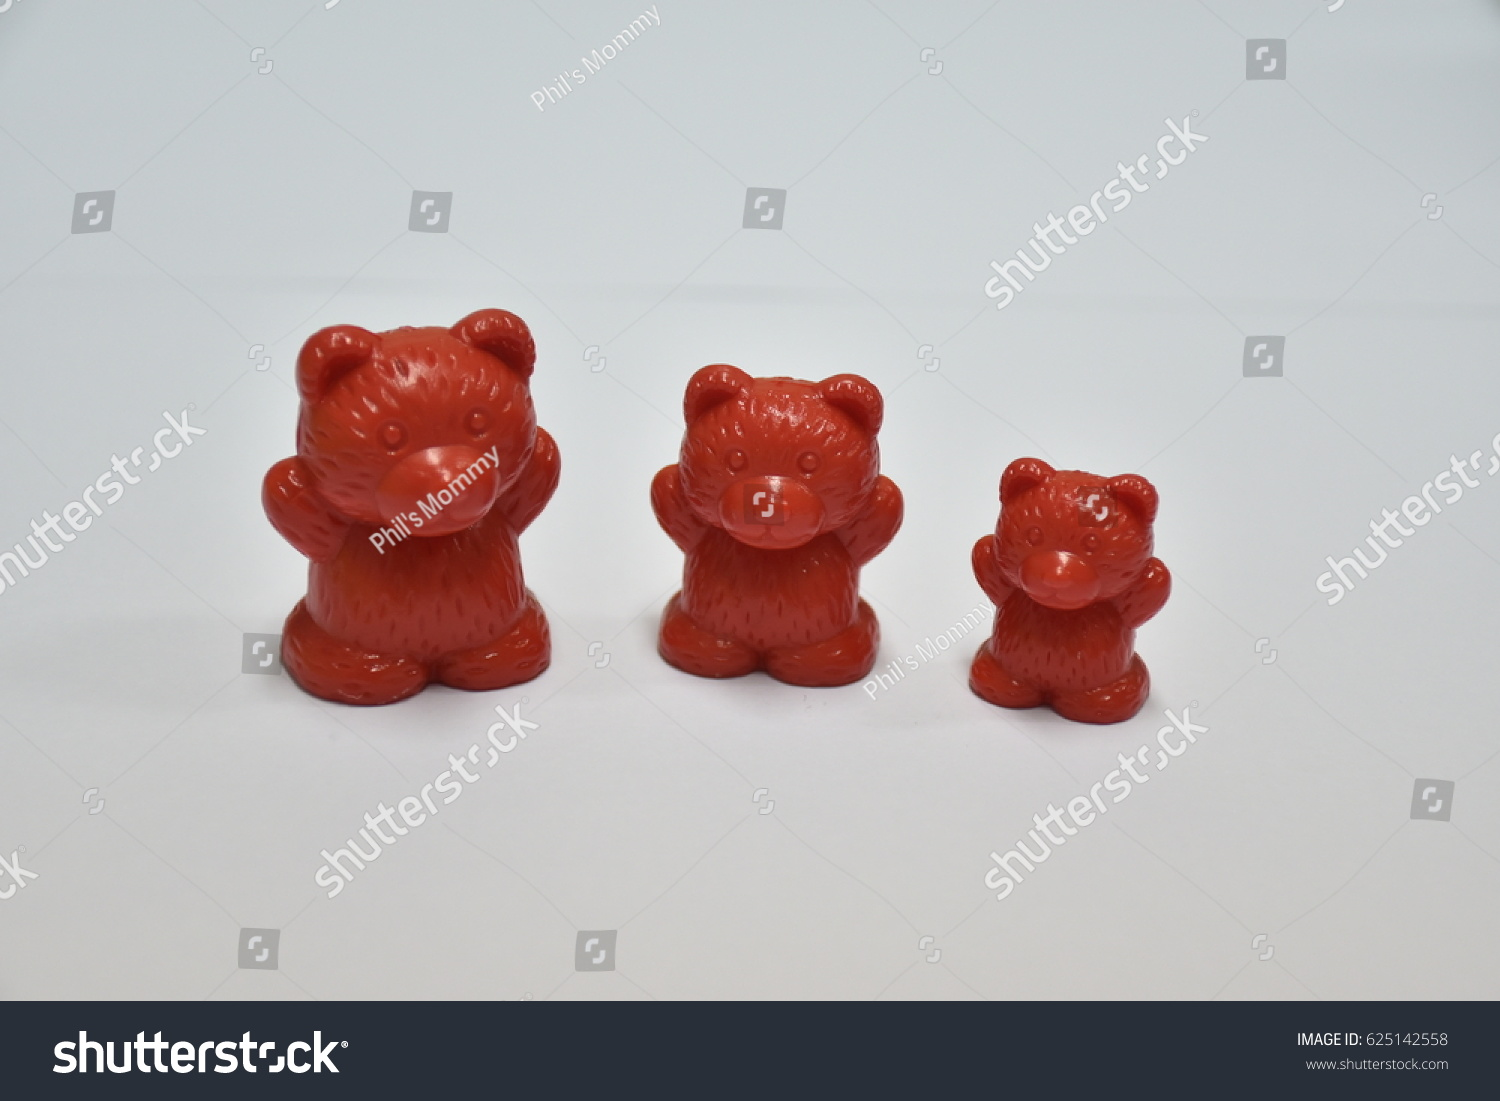 Education Toys Counters For Kids Plastic Counting Bears - Buy ...